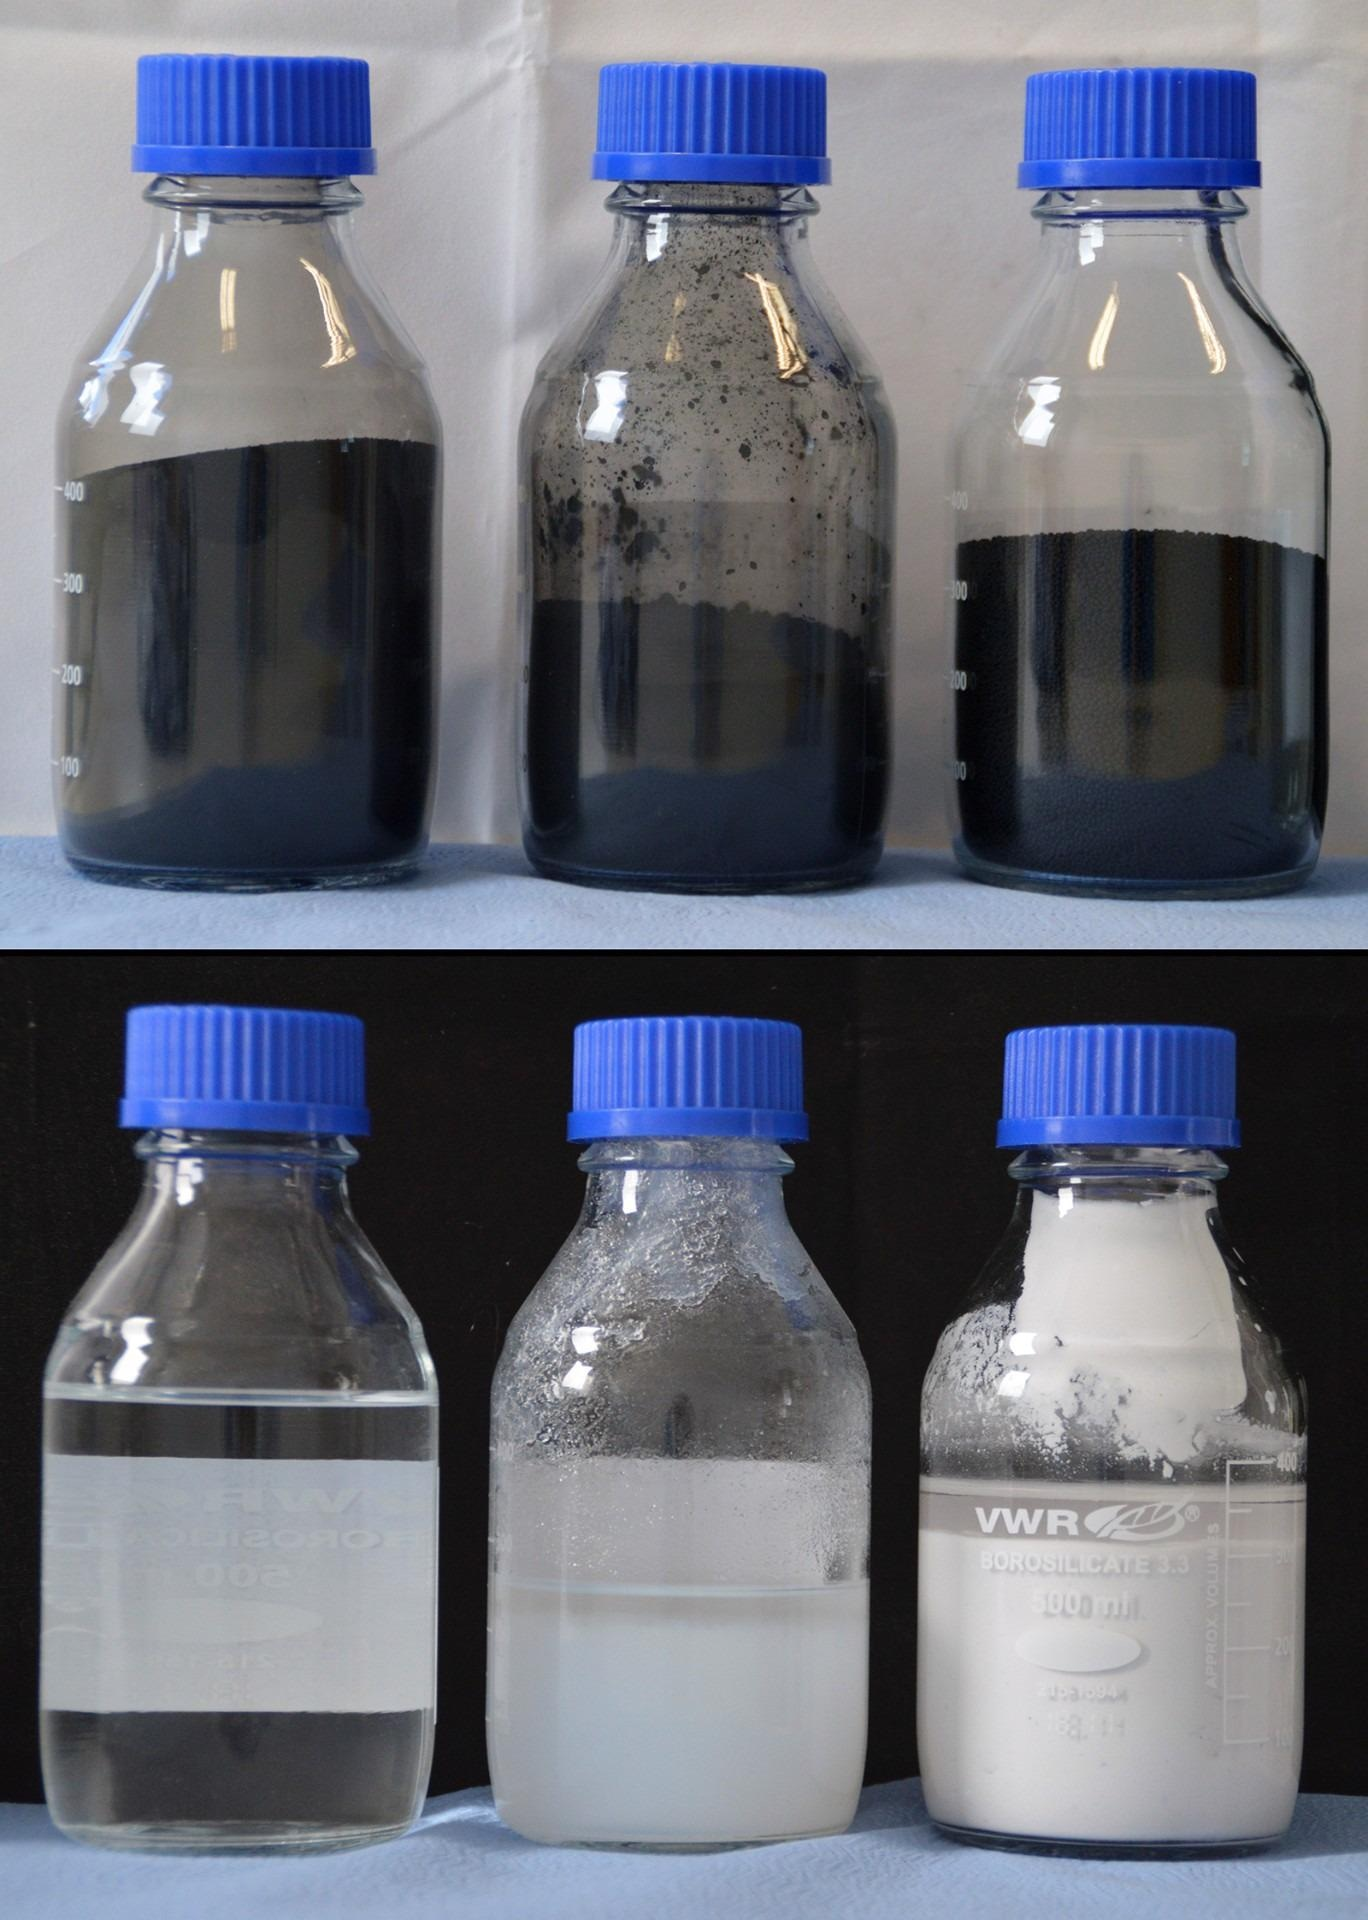 """Top, primary product from left to right: raw rCB, clean rCB (96+), pearlized clean rCB (96+). Bottom, secondary products recovered from the ash, from left to right: liquid sodium silicate or """"water glass"""", precipitated SiO2, precipitated ZnSO4. Image Credit: Fraunhofer Institute for Building Physics IBP."""